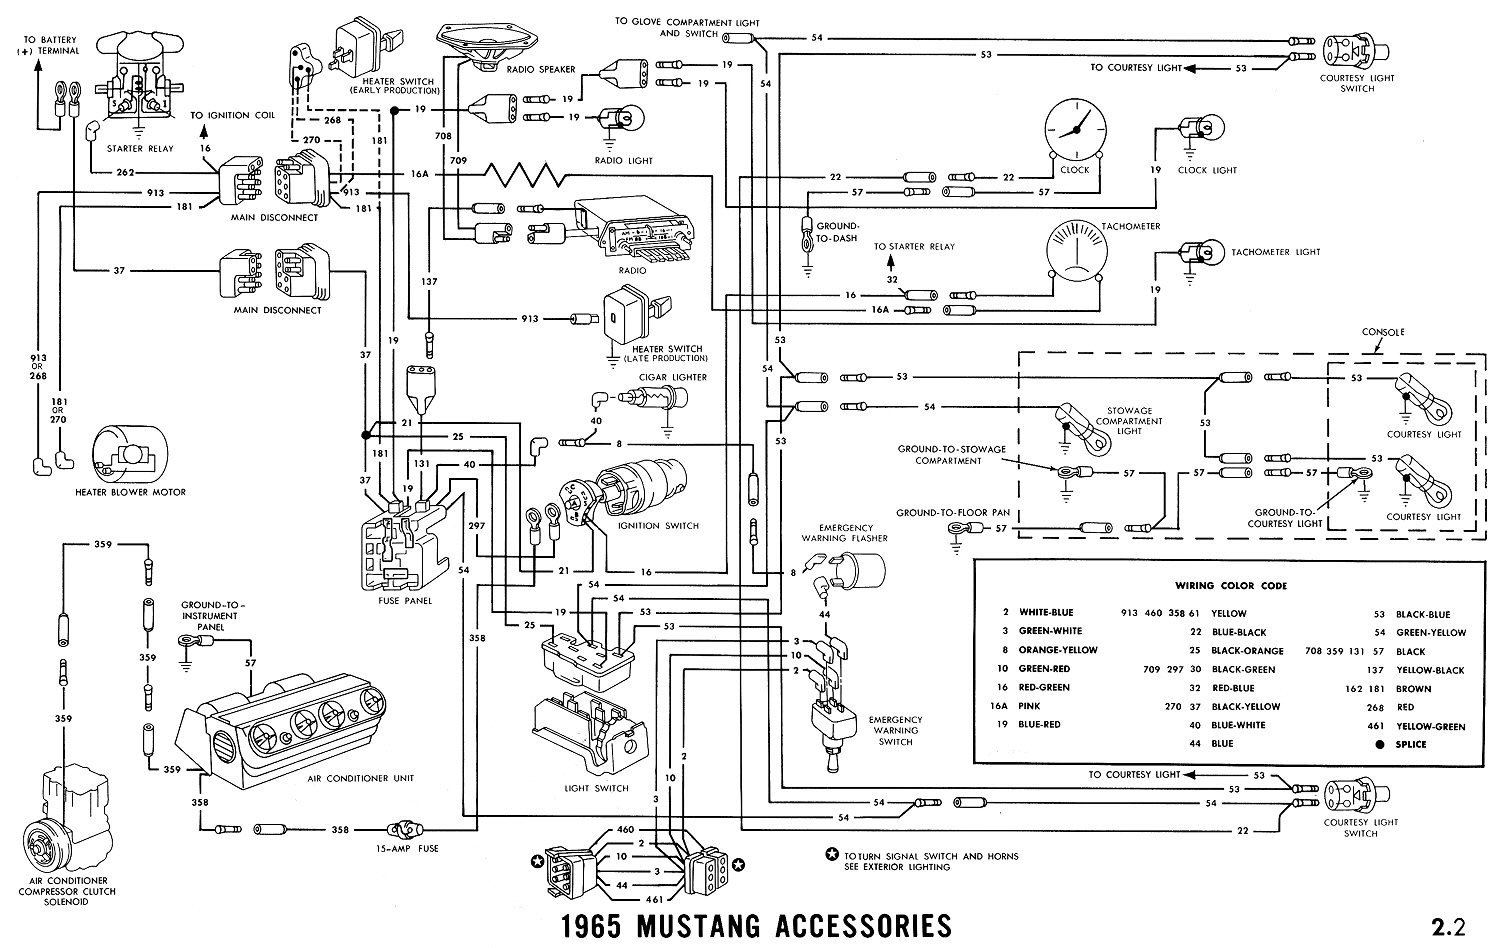 1965i 1965 mustang wiring diagram 1965 lincoln wiring diagram \u2022 wiring 1969 ford mustang ignition wiring diagram at n-0.co